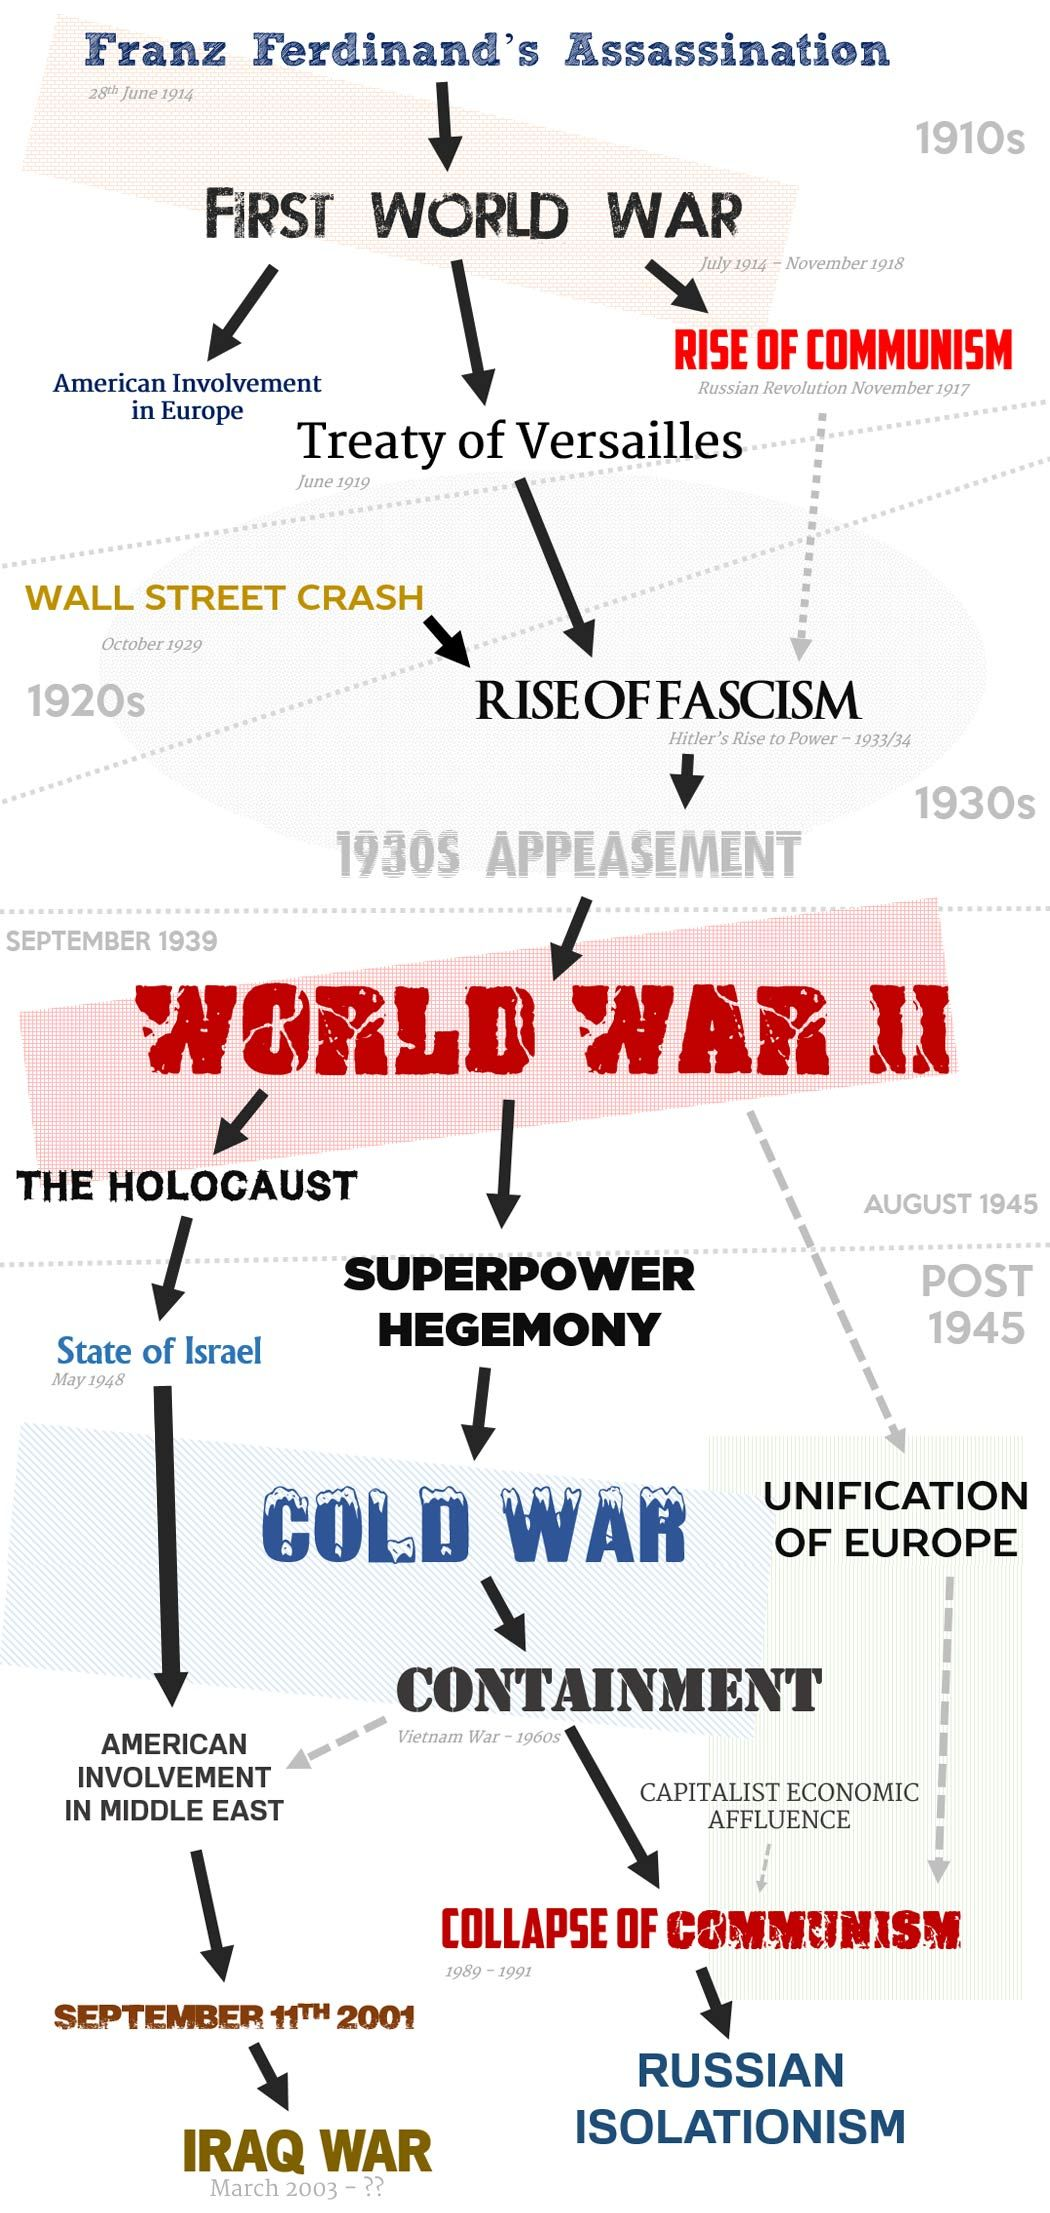 20th century and world war Index: the world from 1901 to and including world war ii.